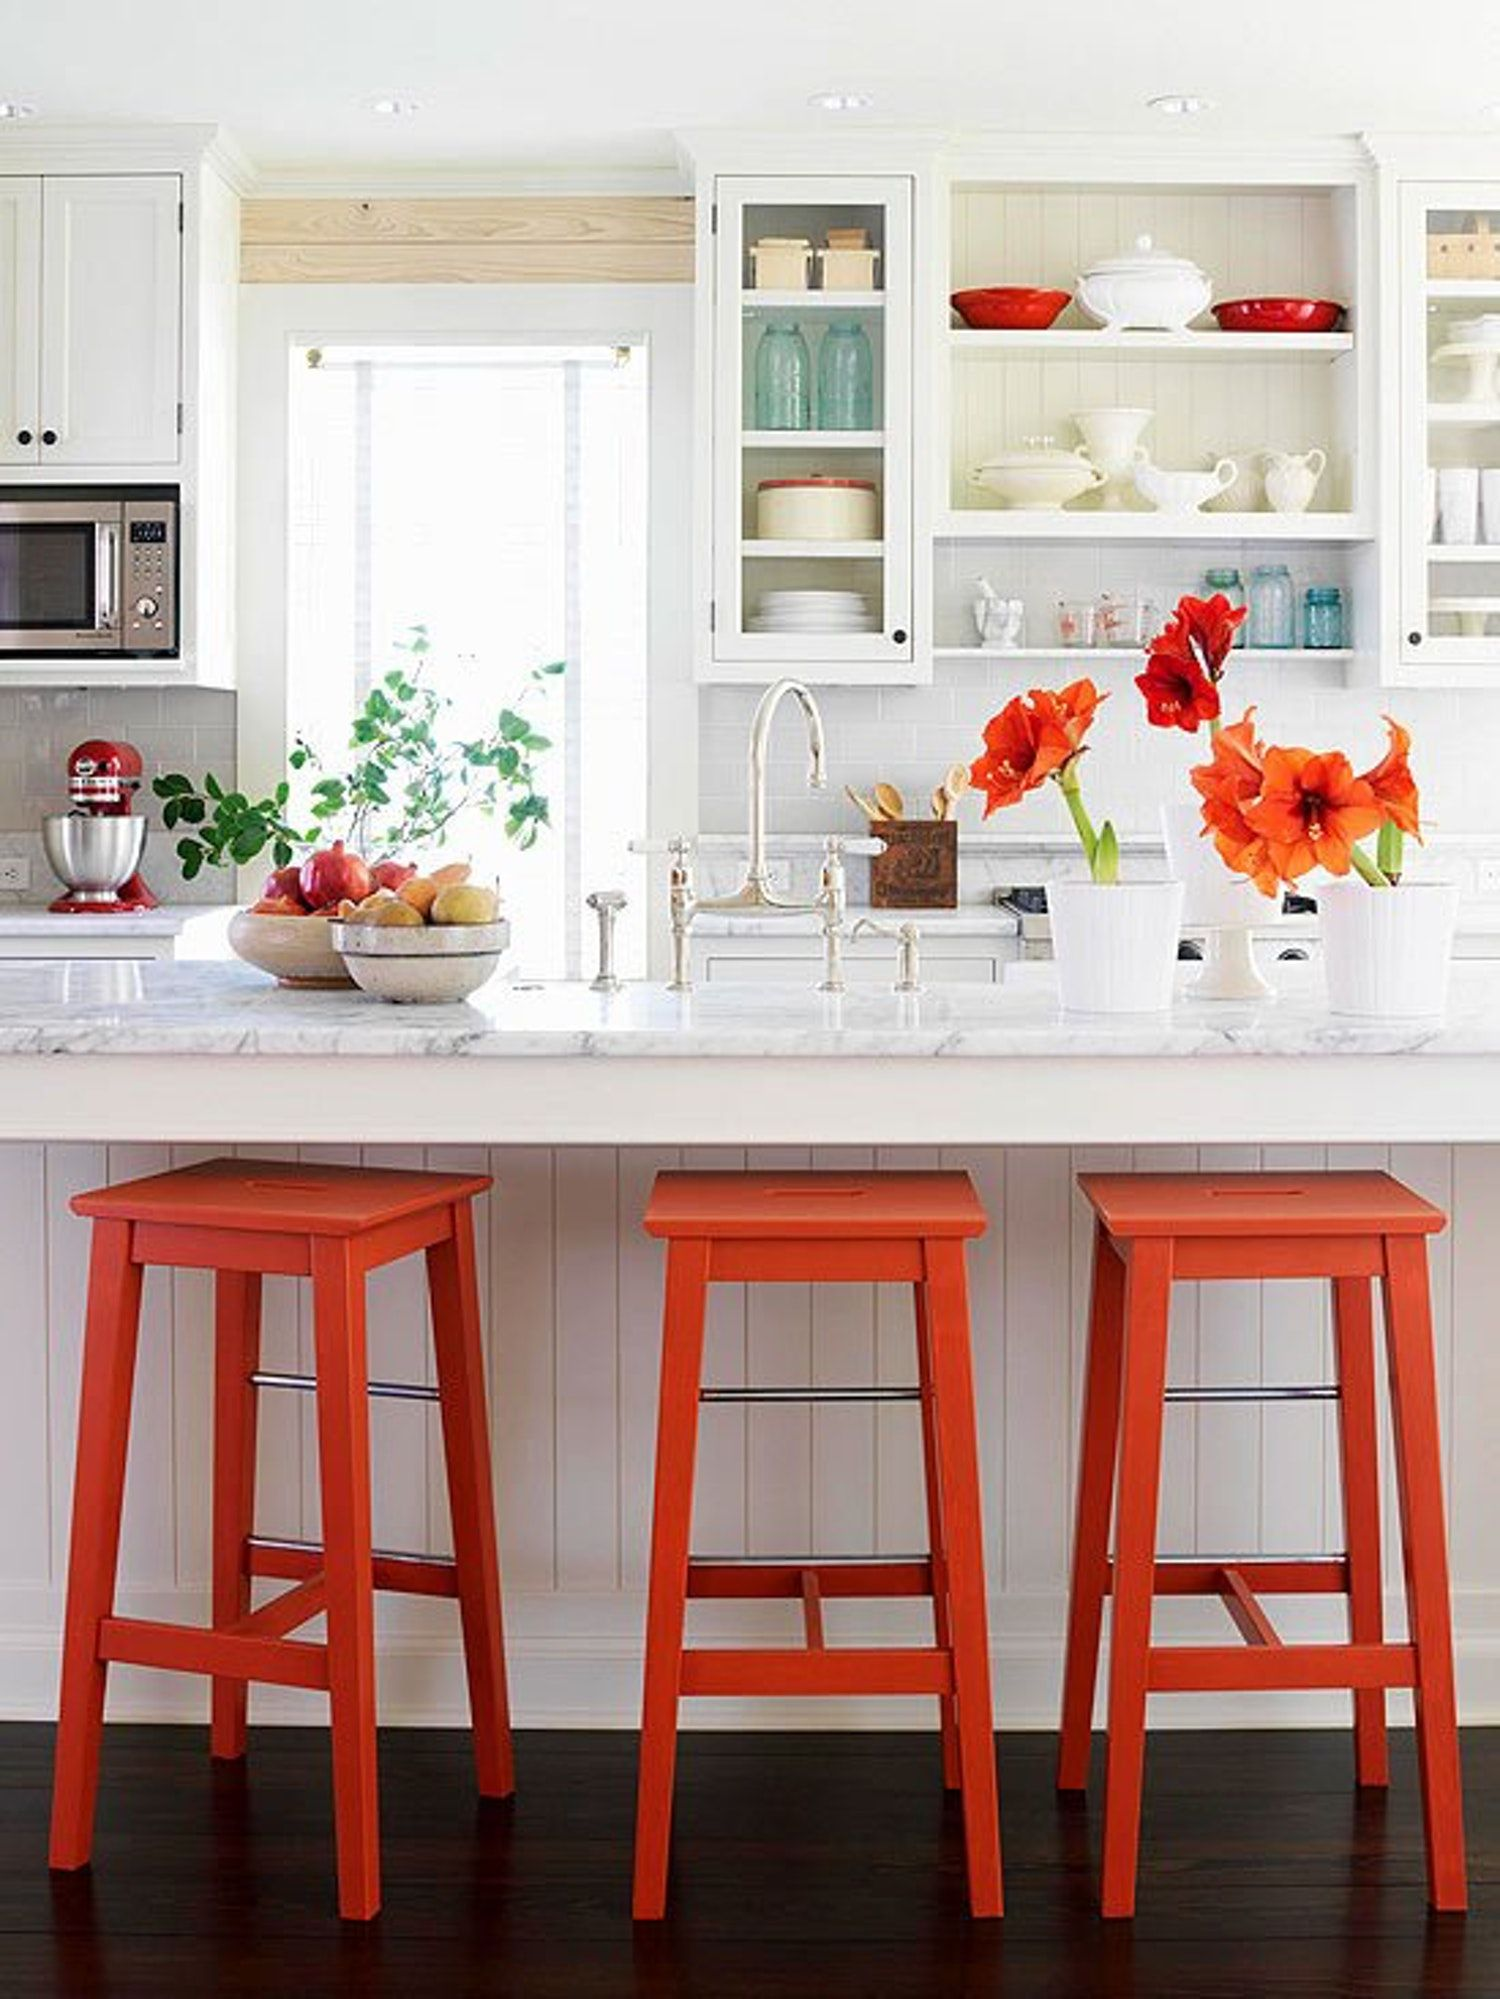 Obsessed with the pops of red! | Dream Kitchens | Pinterest ...